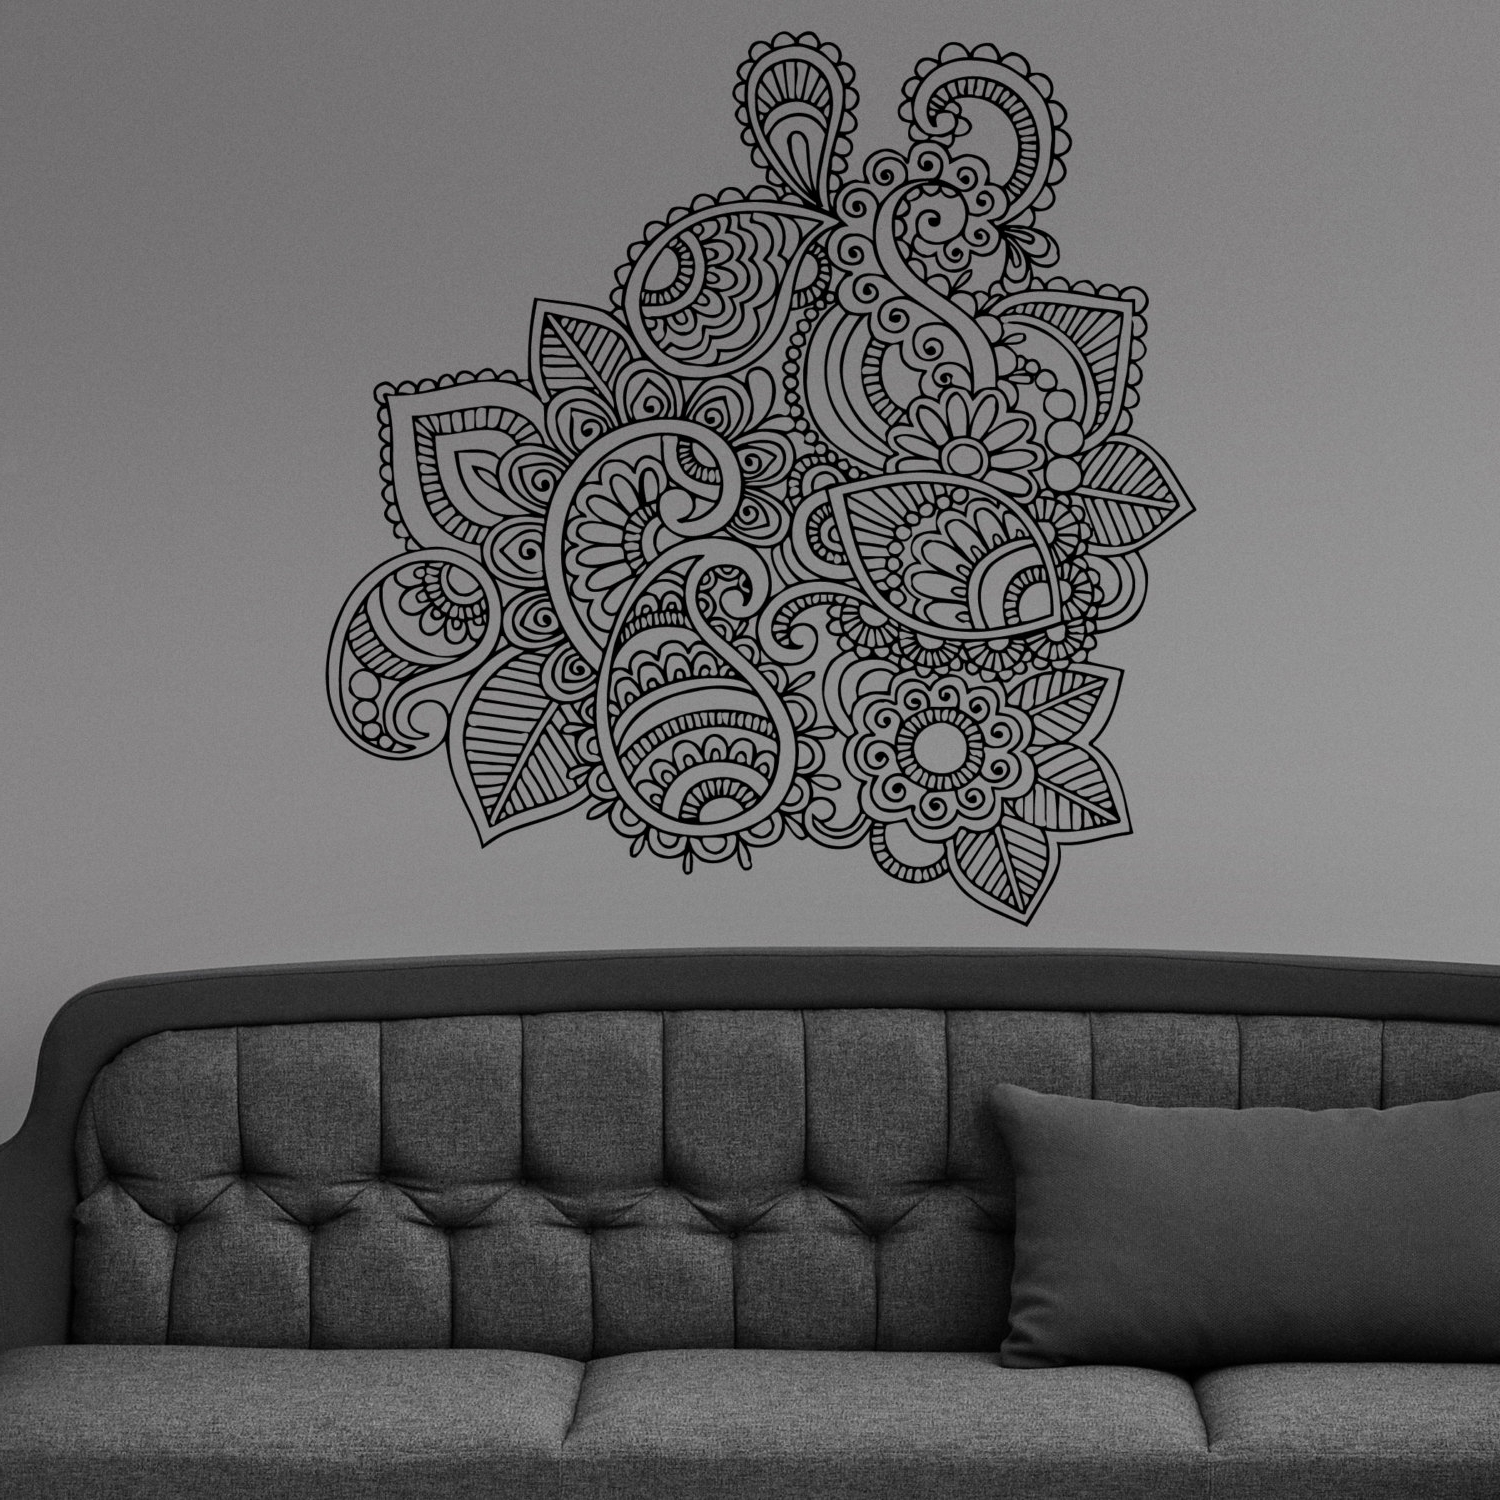 Preferred 42 Henna Wall Art, Henna Design On Wall Google Search Hallway With Henna Wall Art (View 19 of 20)